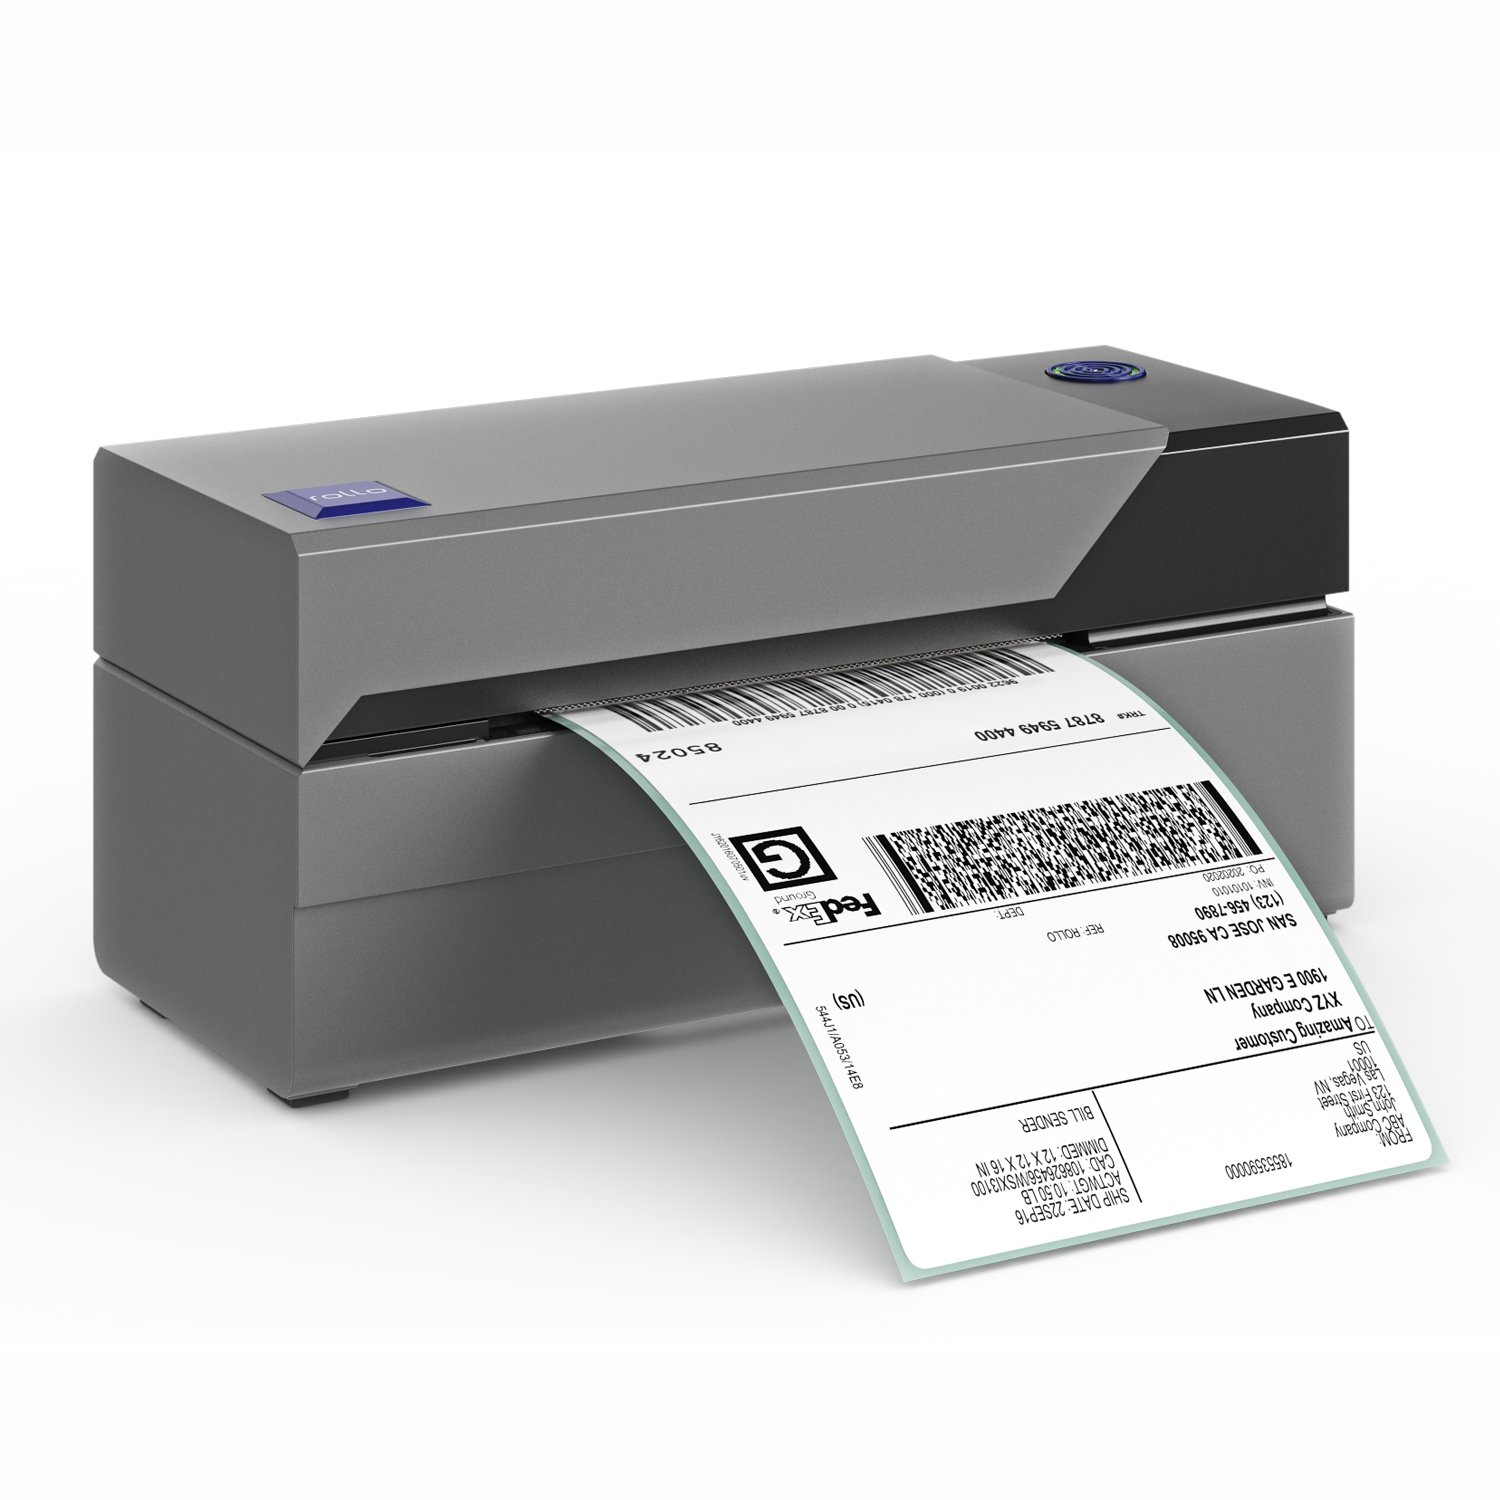 Amazon Com Rollo Label Printer Commercial Grade Direct Thermal High Speed Printer Compatible With Etsy Ebay Amazon Barcode Printer 4x6 Printer Electronics